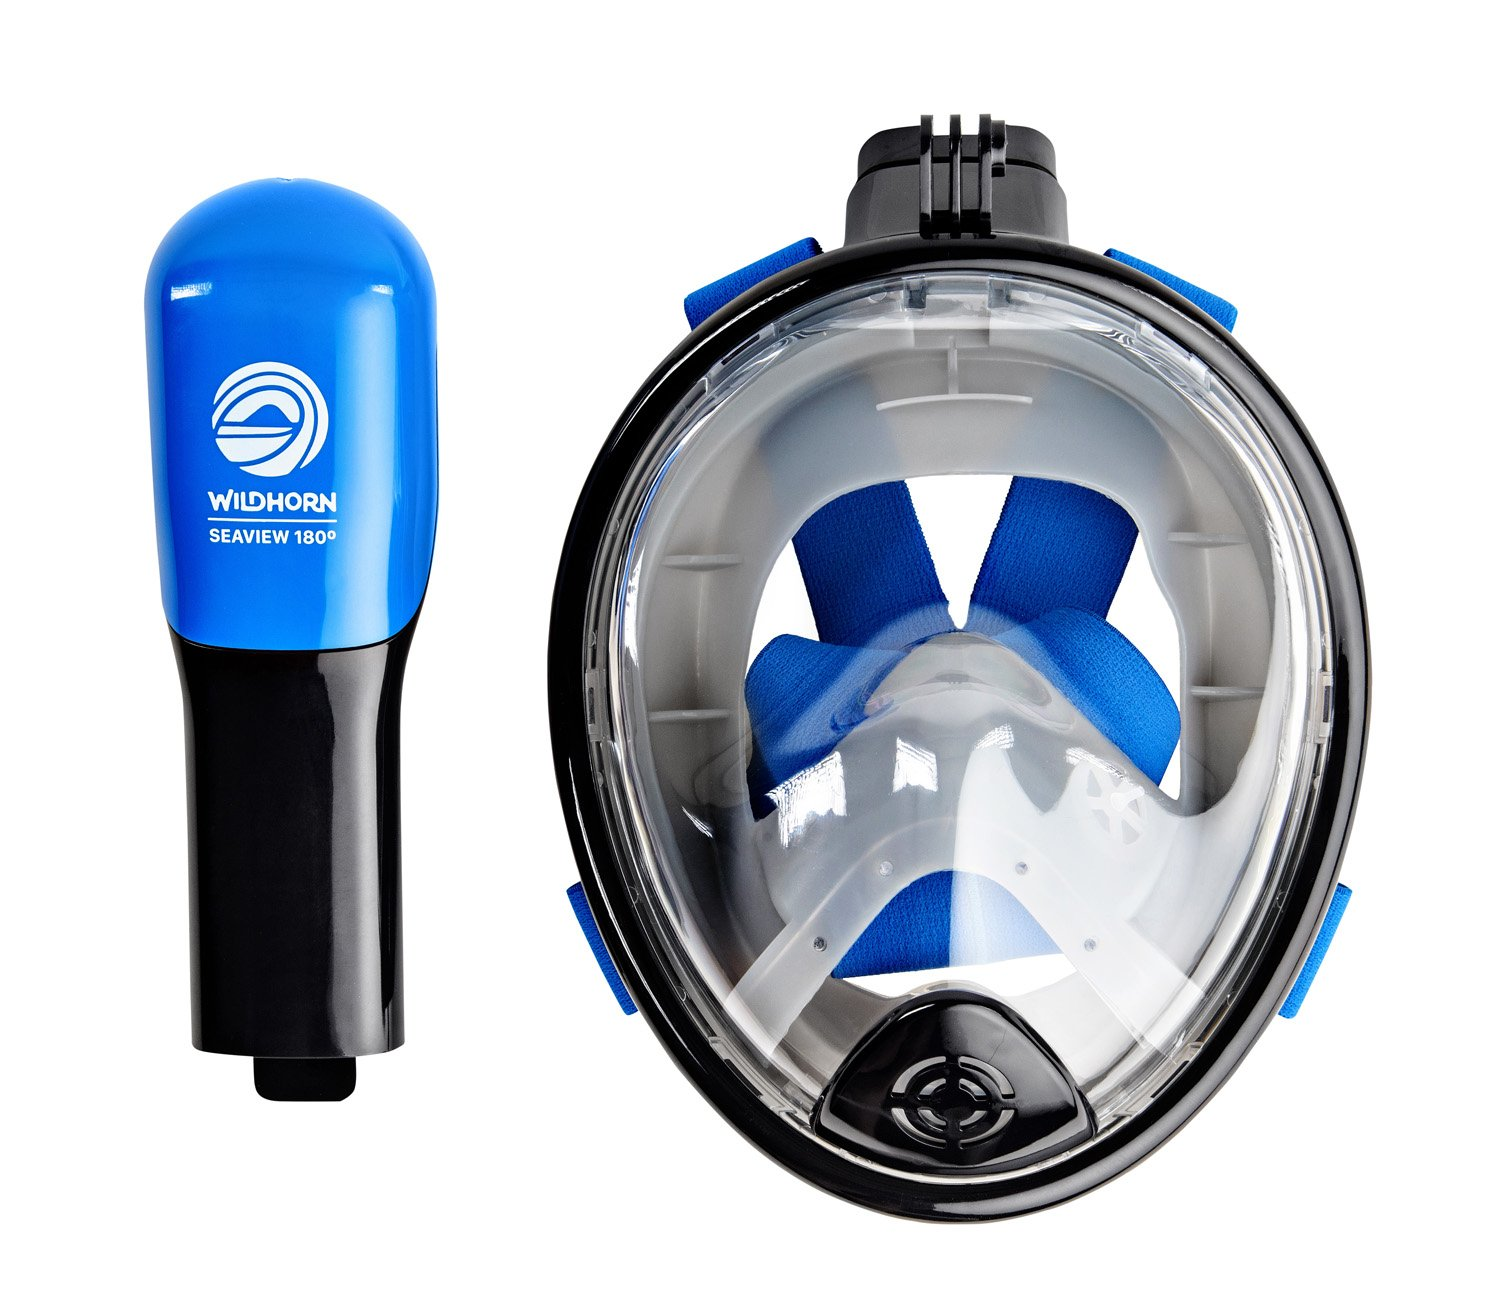 Seaview 180° GoPro Compatible Snorkel Mask- Panoramic Full Face Design. See More With Larger Viewing Area Than Traditional Masks. Prevents Gag Reflex with Tubeless Design (Navy, XS) by WildHorn Outfitters (Image #5)